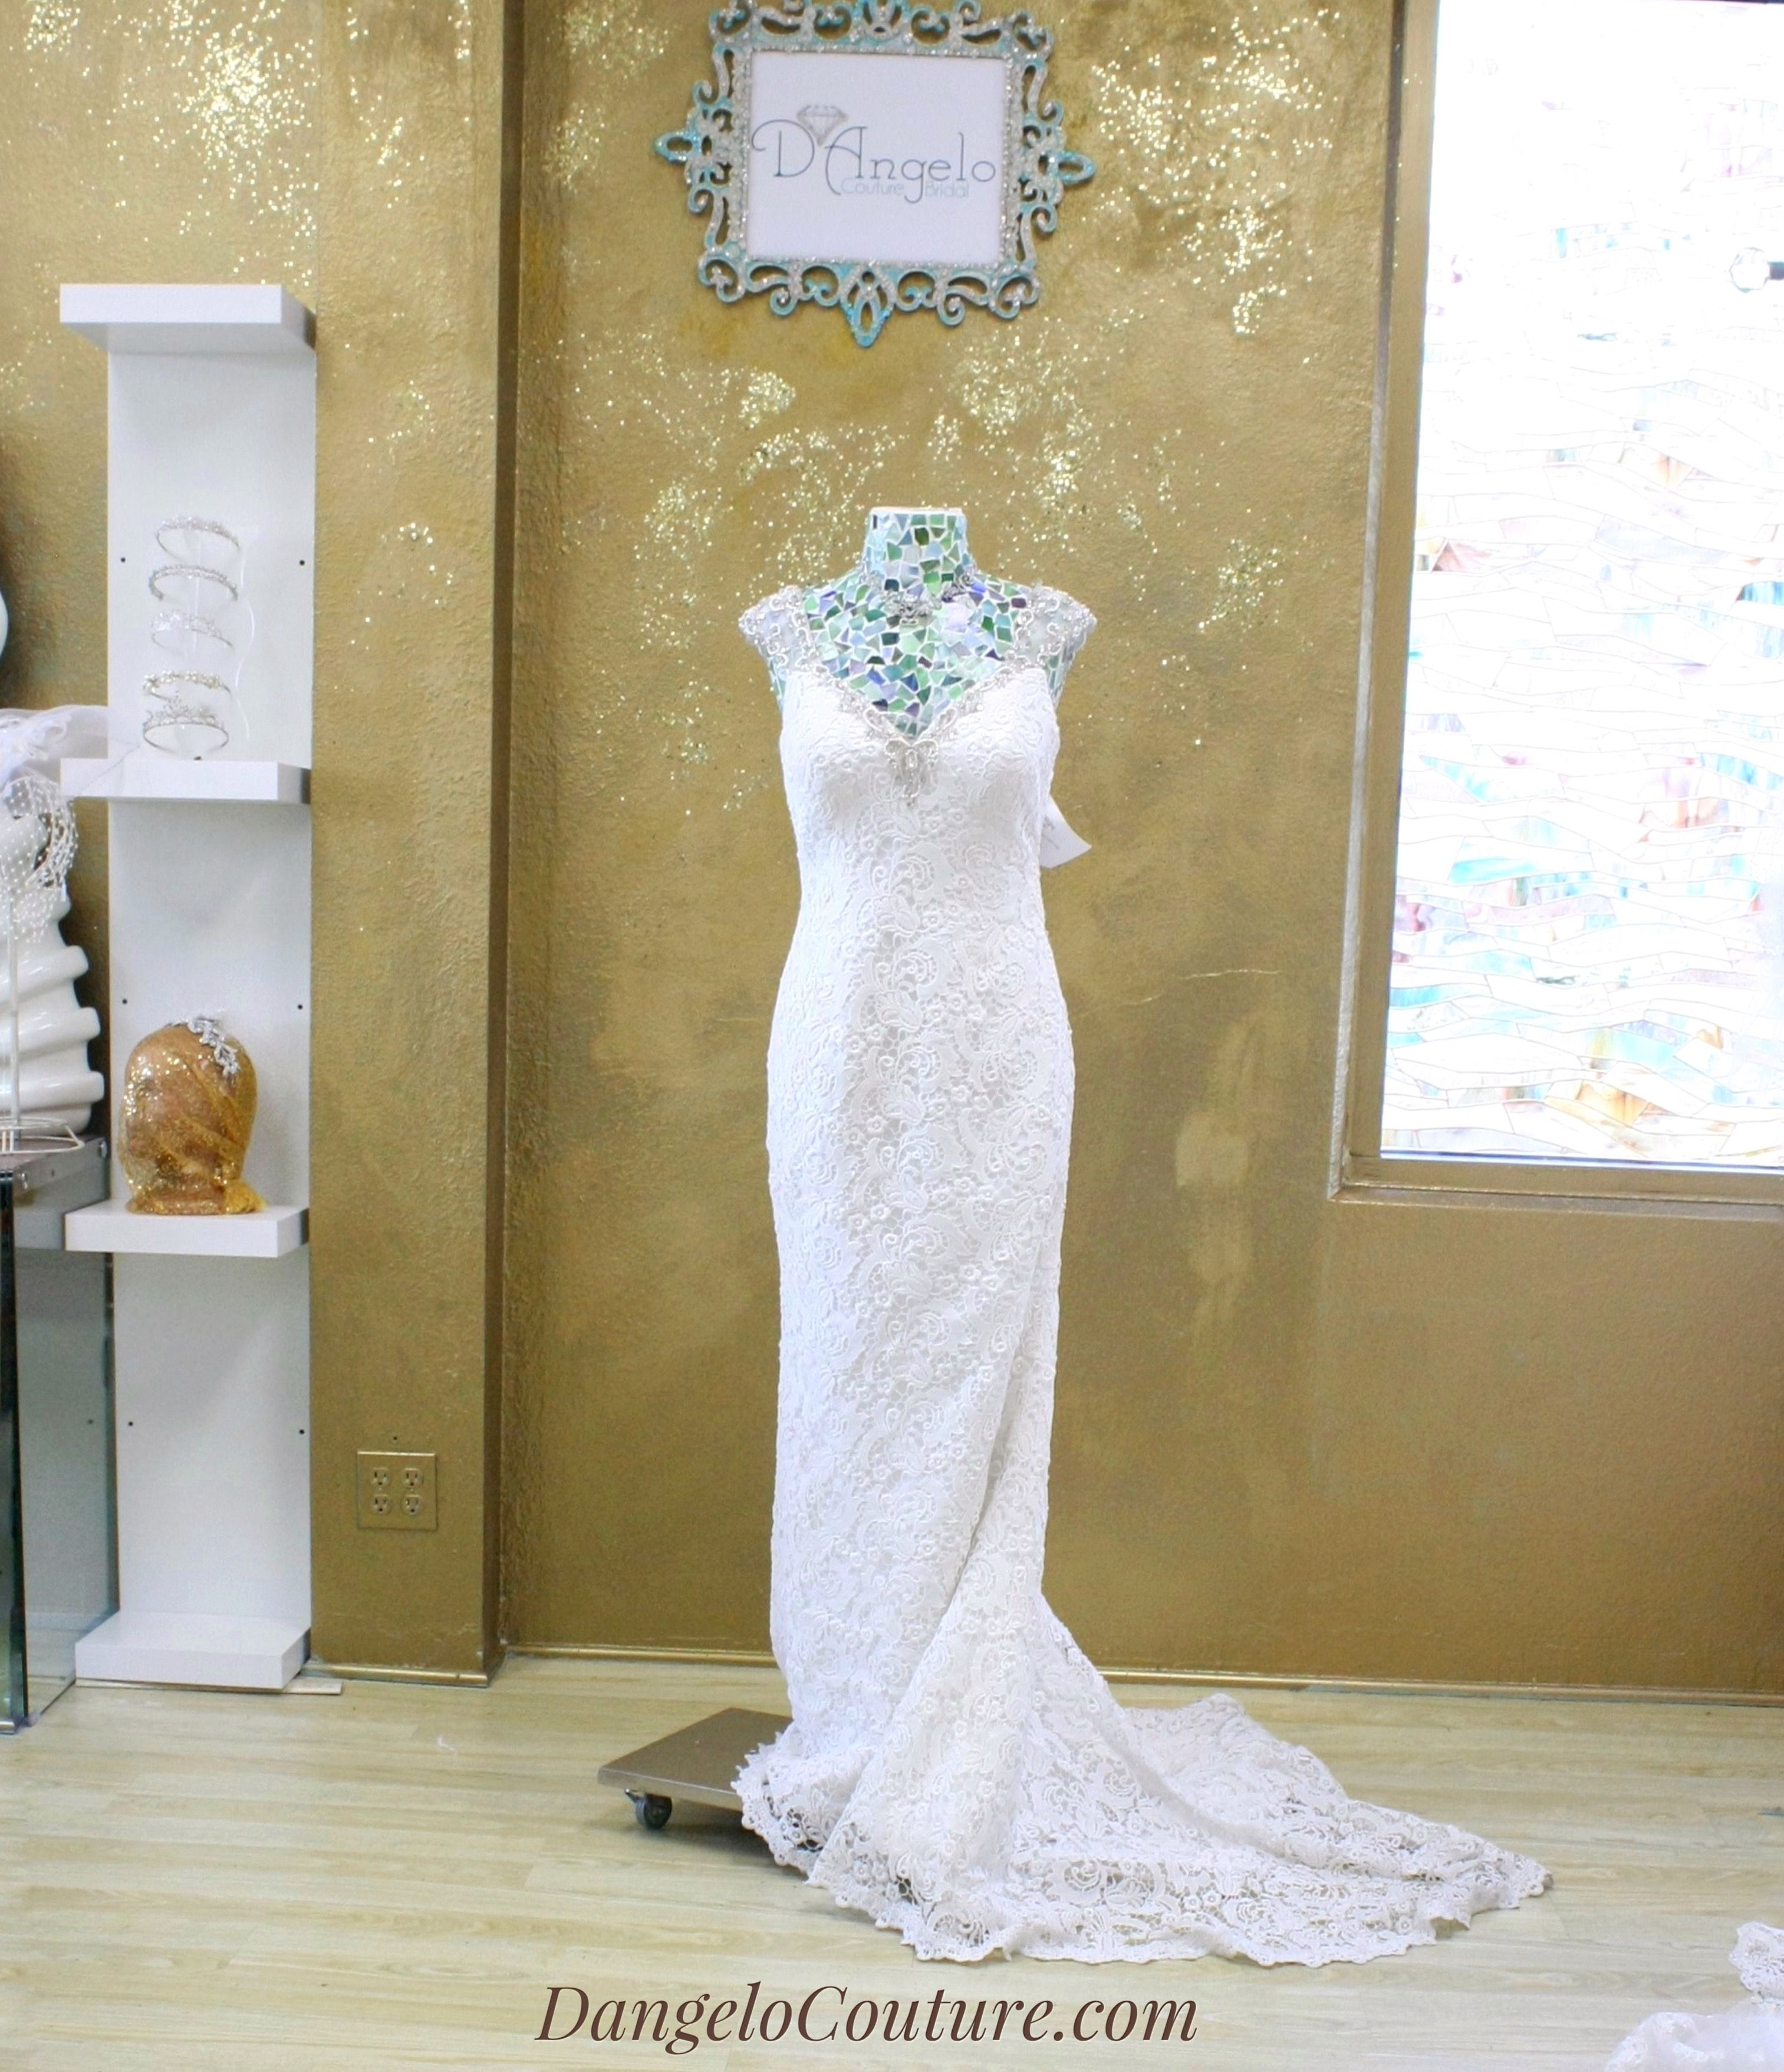 Superb Wedding Dresses at D uAngelo Couture Bridal in San Diego California Beautiful Wedding